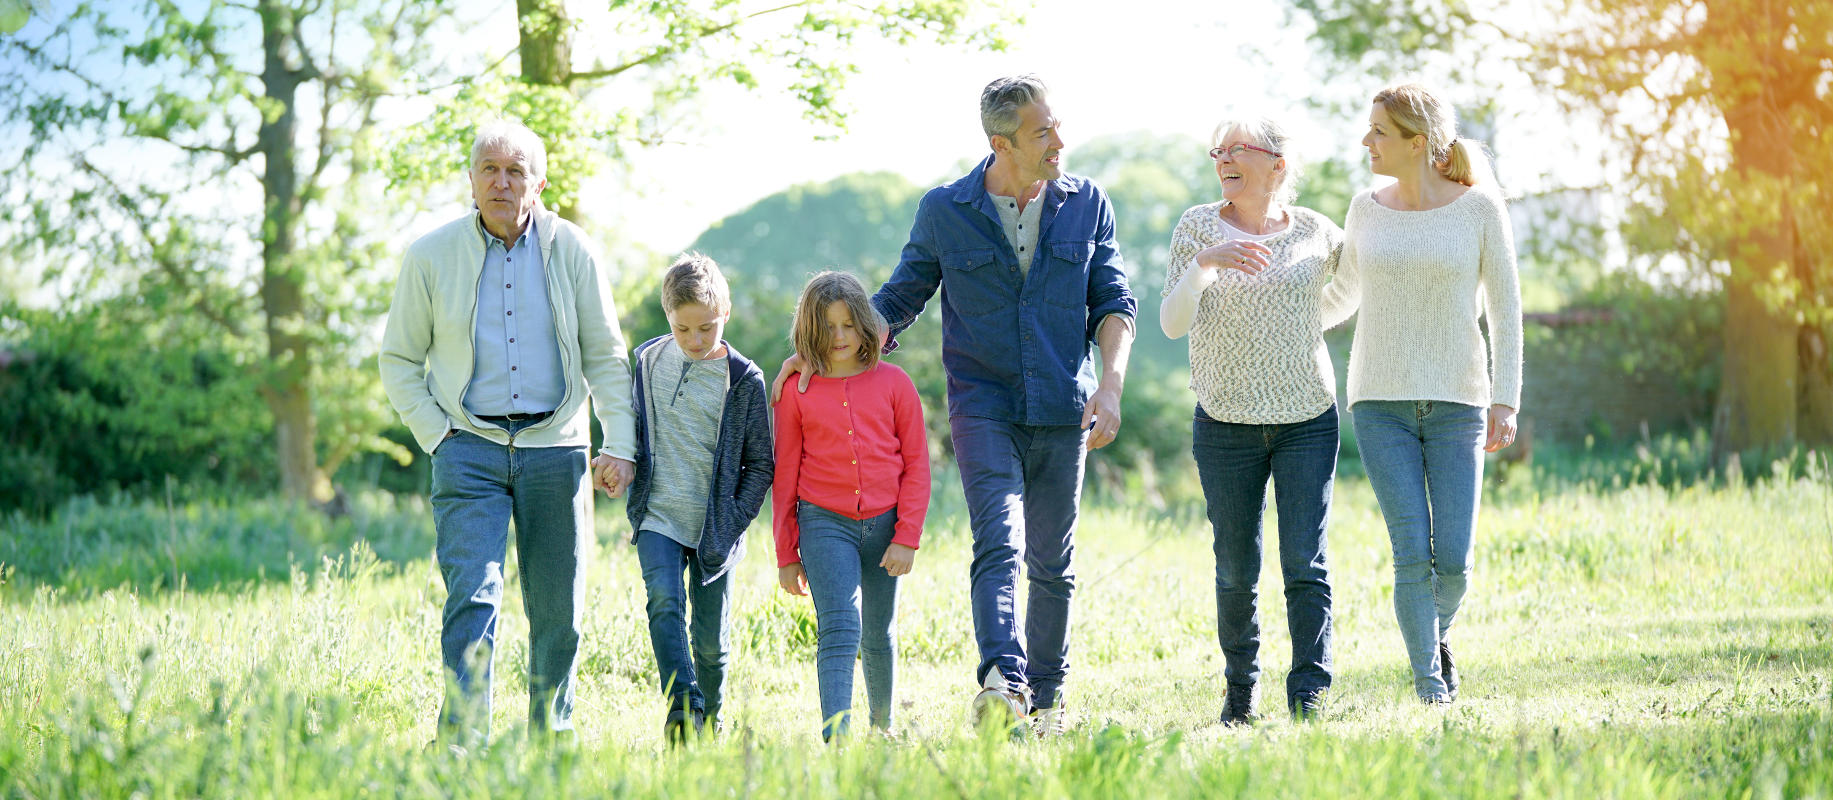 NaturalFit; Dentures & Denture Care: About Us Page: Family Walking in Field